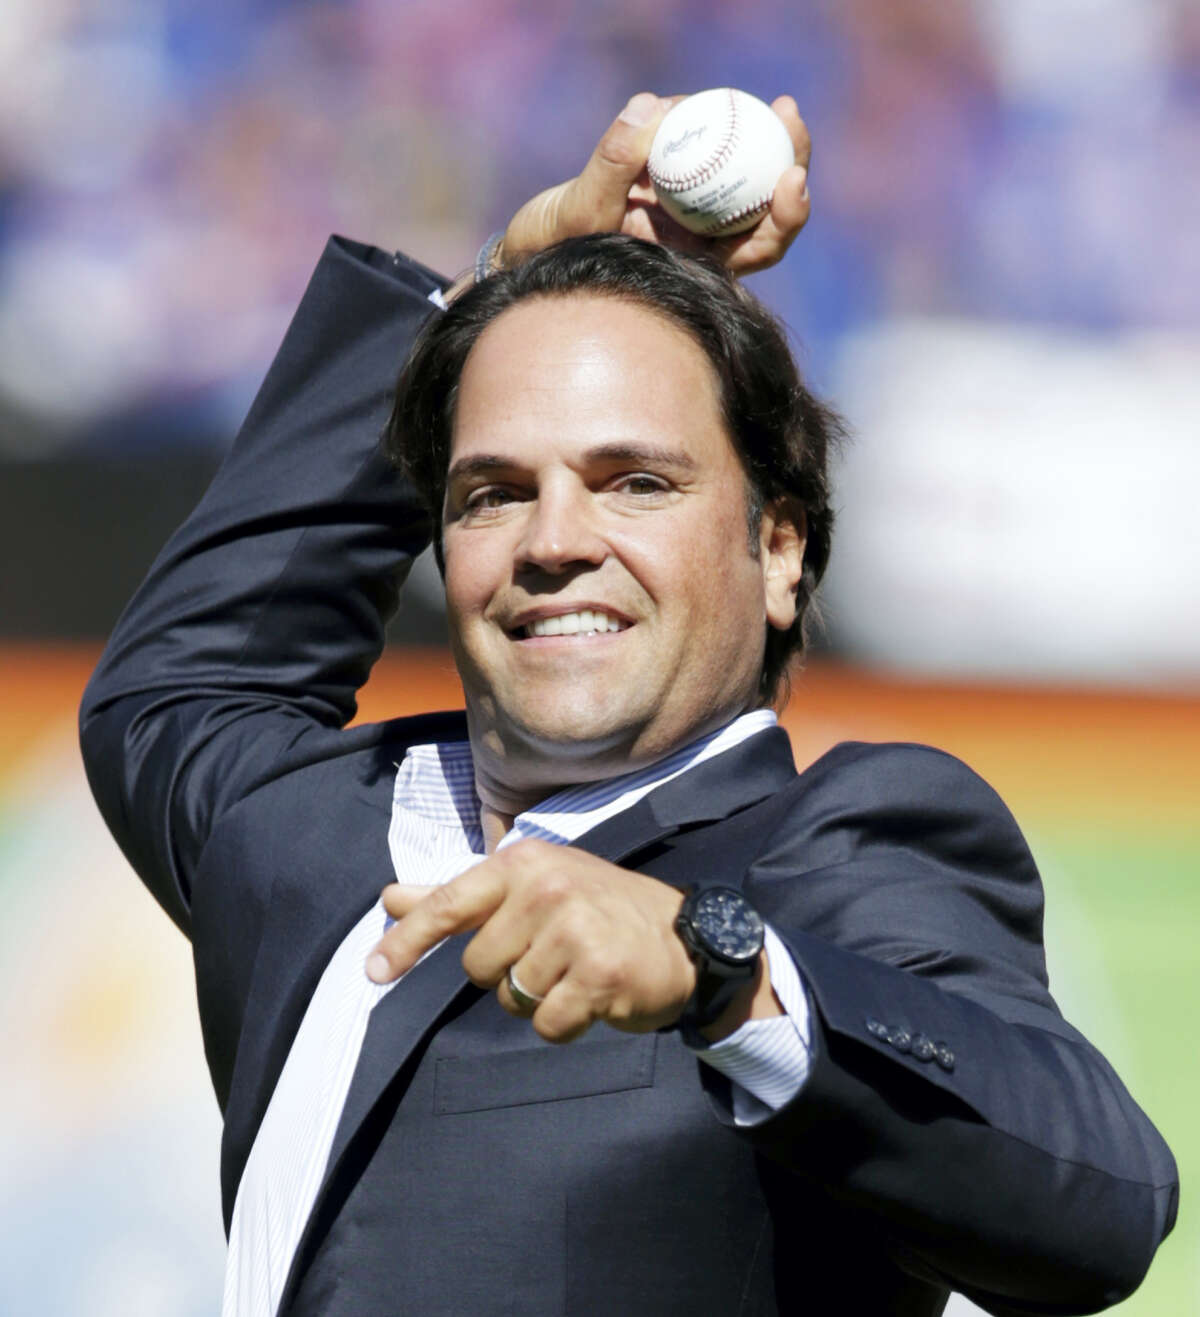 FILE - In this Sept. 29, 2013, file photo, former New York Mets catcher Mike Piazza throws out the ceremonial first pitch before a baseball game against the Milwaukee Brewers, following a ceremony inducting him into the Mets Hall of Fame, in New York. Ken Griffey Jr. seems assured of election to the Baseball hall of Fame on the first try Wednesday, Jan. 6, 2016, possibly with a record vote of close to 100 percent. Mike Piazza, Jeff Bagwell and Tim Raines also were strong candidates to gain the 75 percent needed for baseball's highest honor.(AP Photo/Kathy Willens, File)